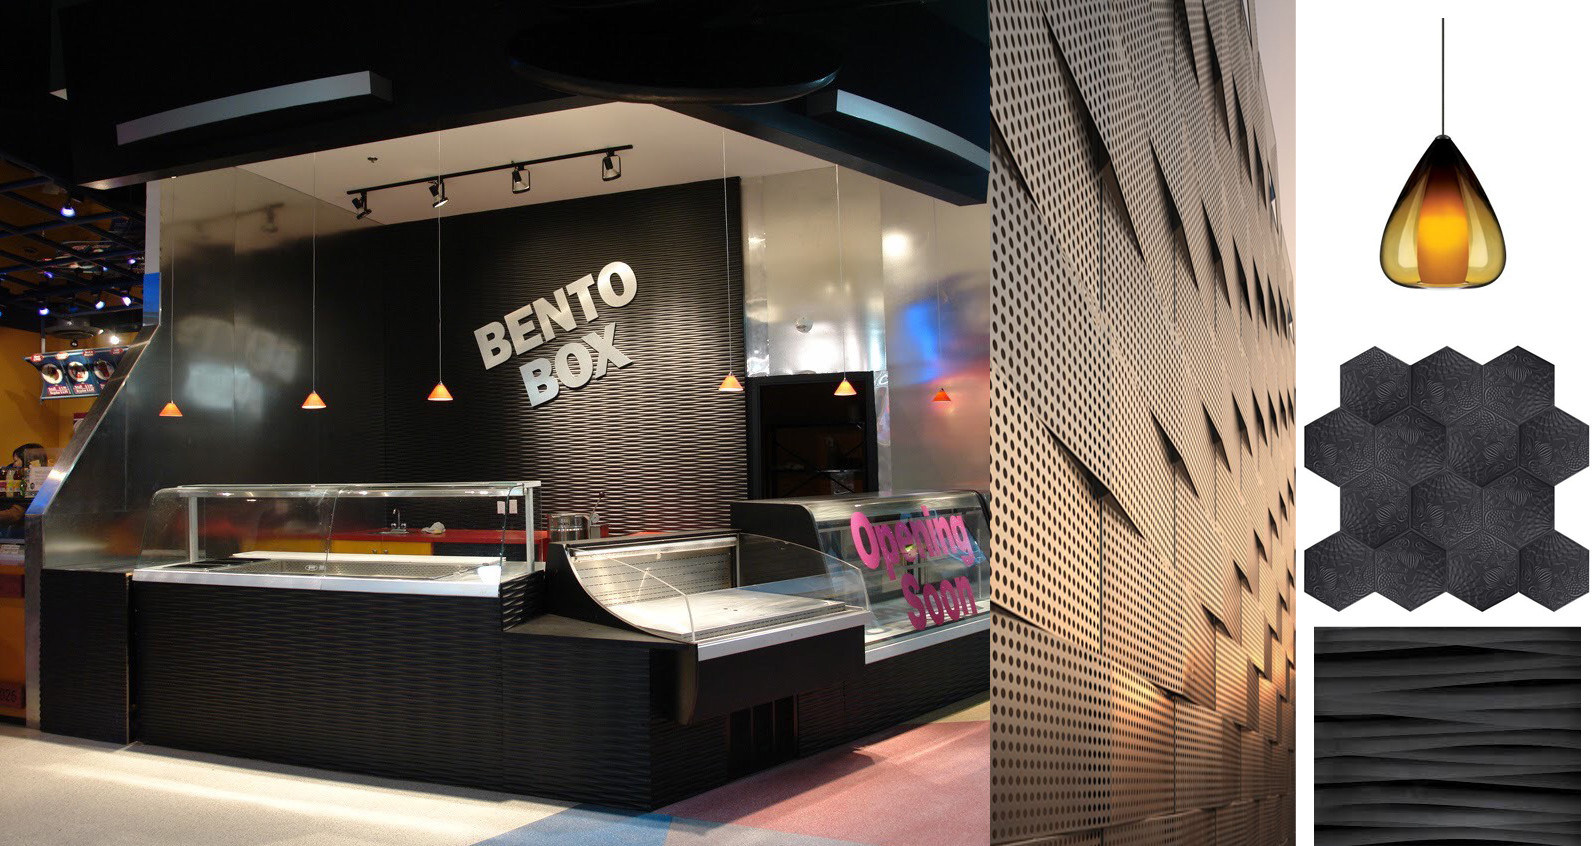 food court-bento box.jpg